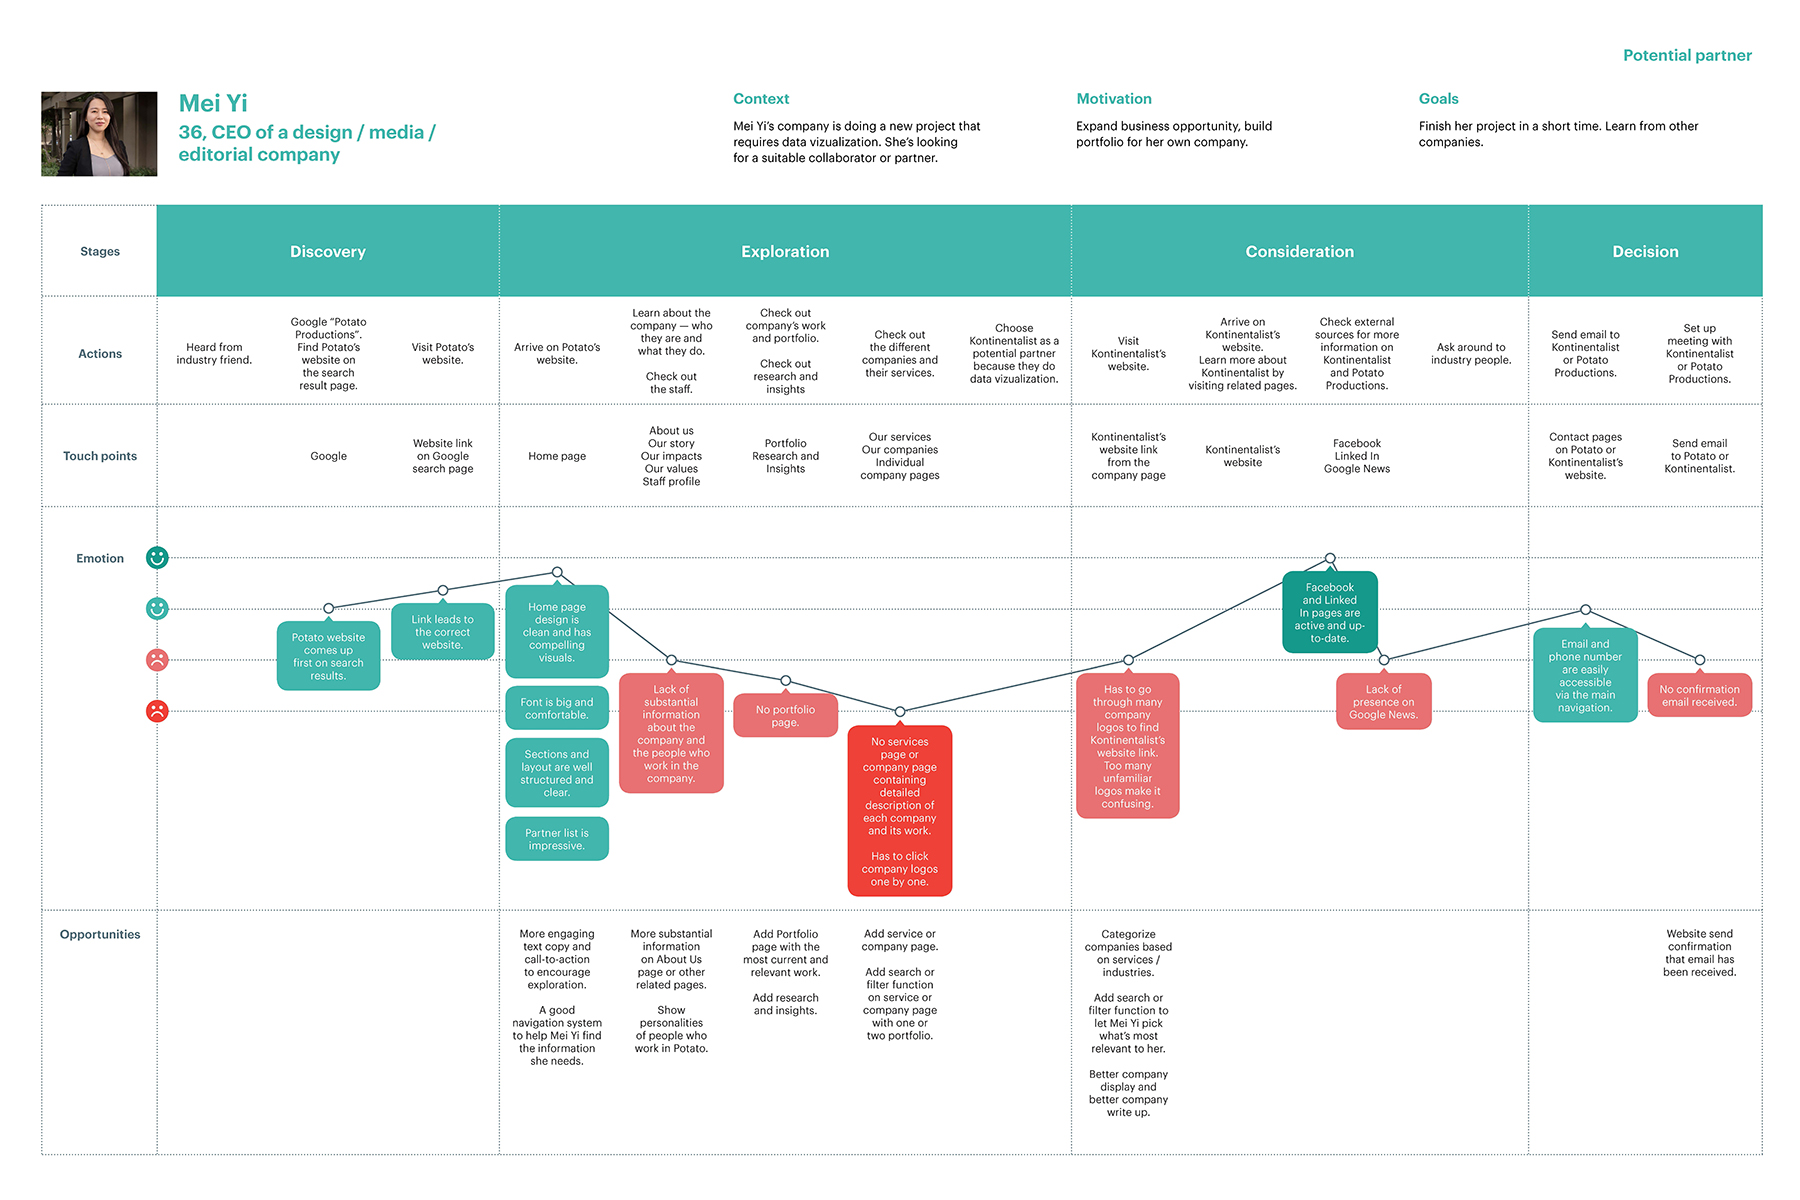 User journey map for potential partners